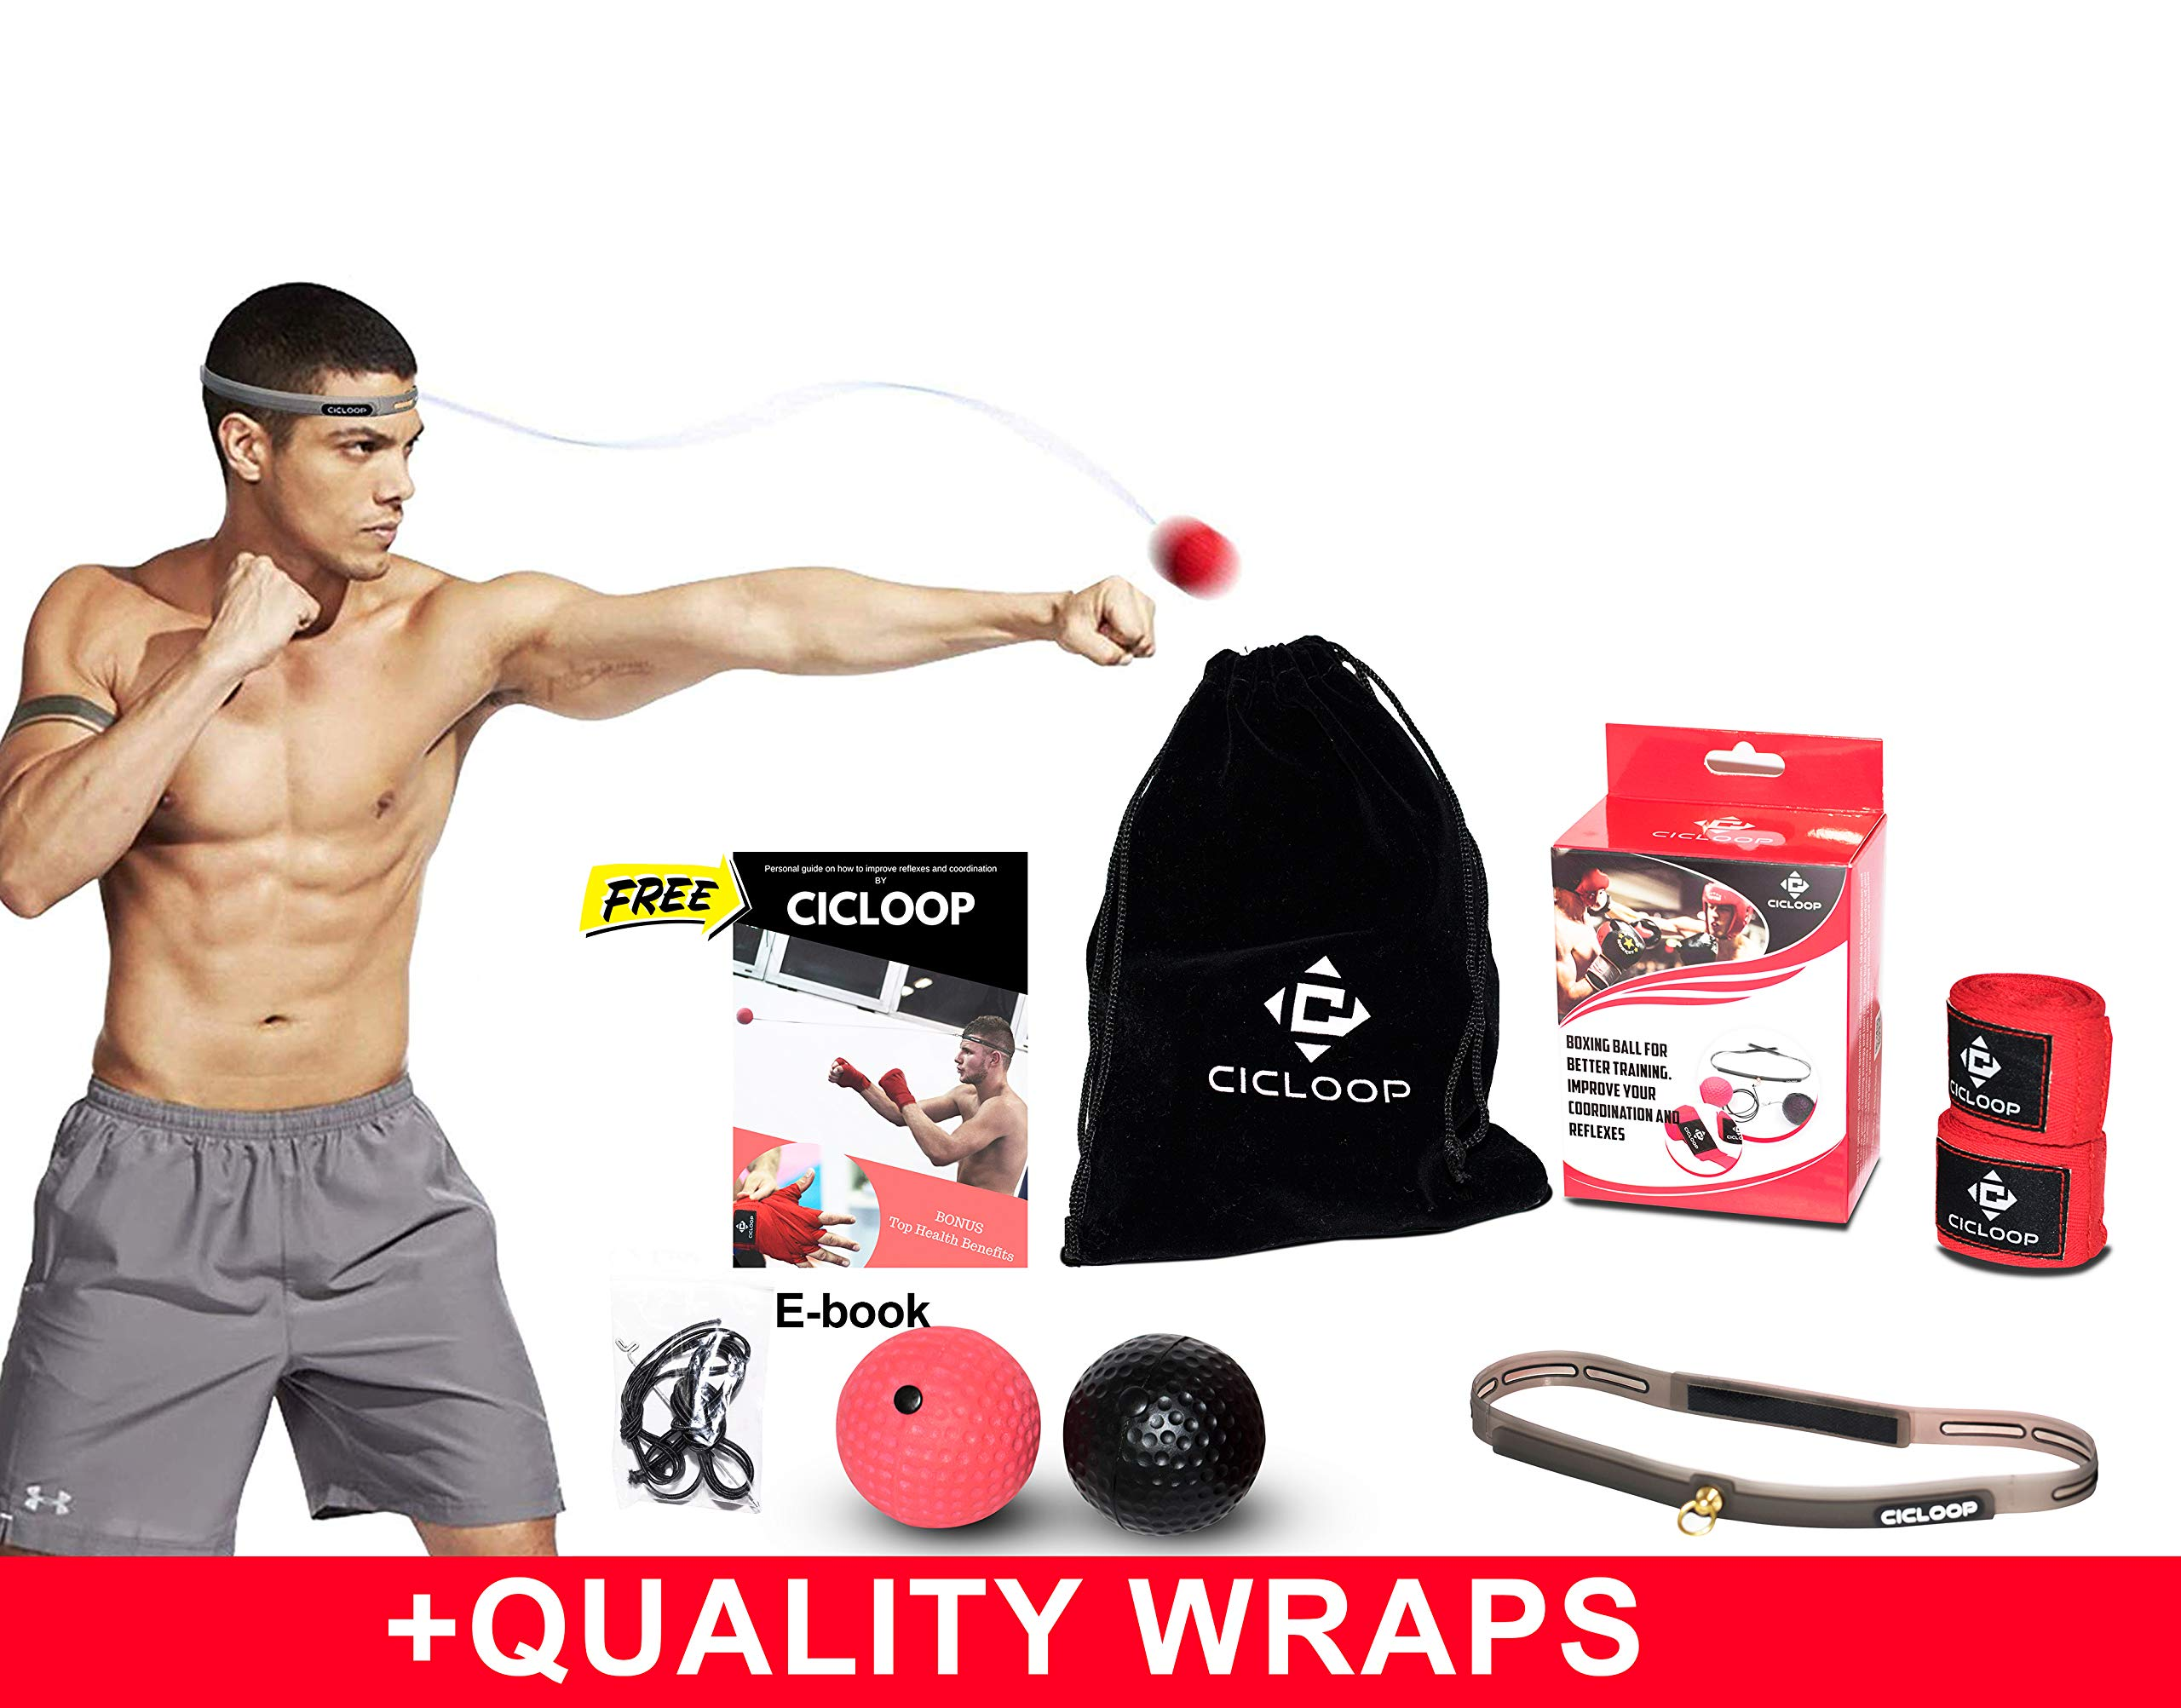 2 Punching Ball Headband For Reflex /& Strength Training,Hand Wraps Carryin Bag